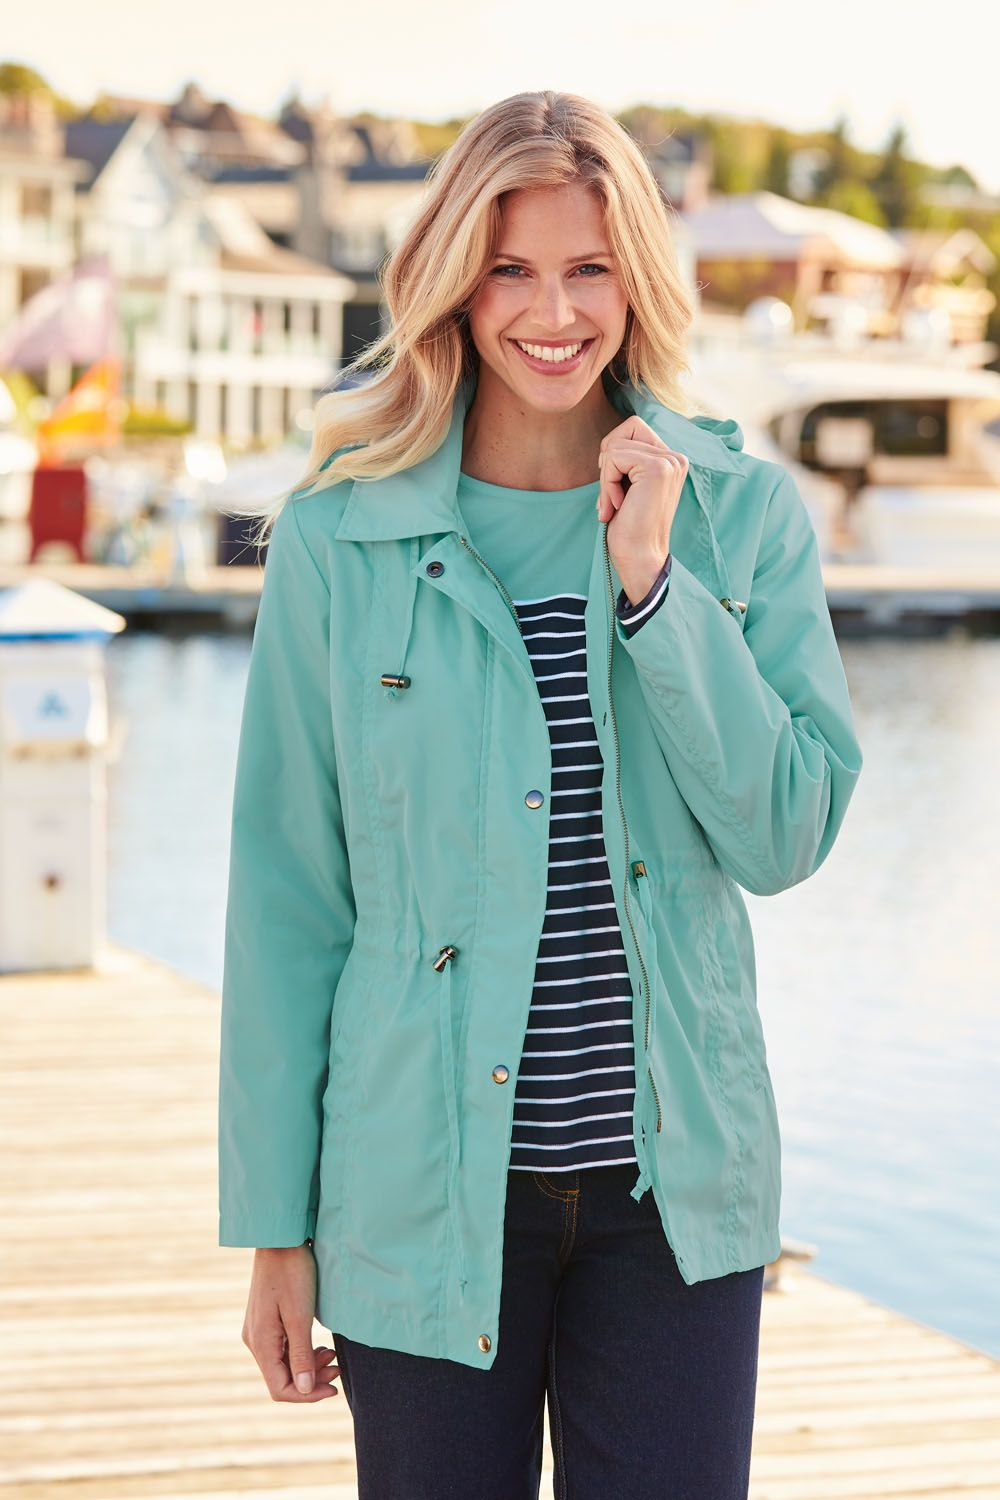 Spring Anorak Jacket Clothes Modest Outfits Spring Anorak Jacket [ 1500 x 1000 Pixel ]